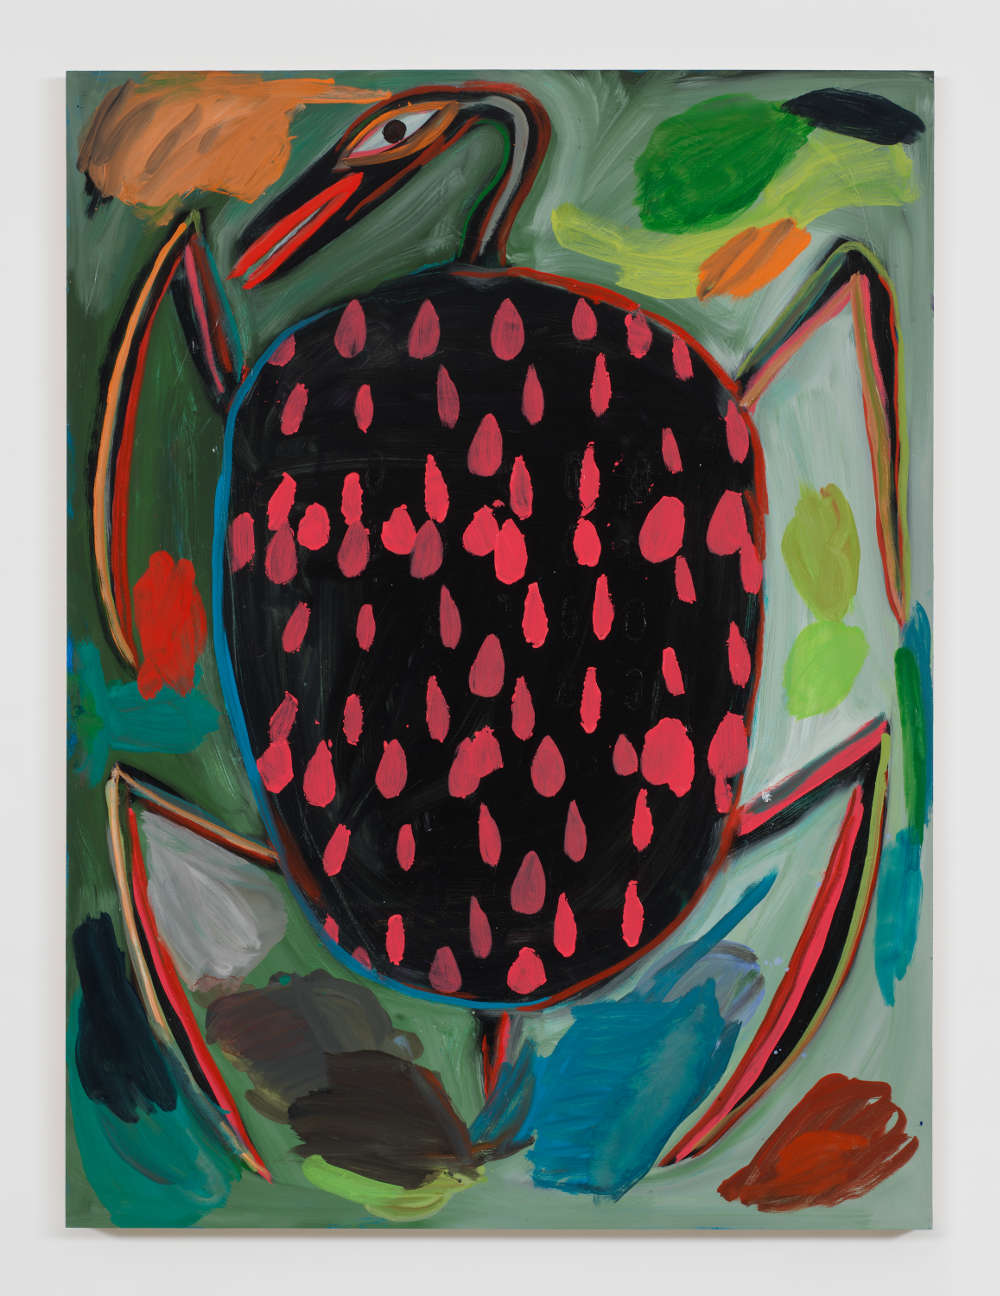 Josh Smith, Turtle, 2019. Oil on wood panel 48 1/8 x 36 inches 122.2 x 91.4 cm © Josh Smith. Courtesy the artist and David Zwirner